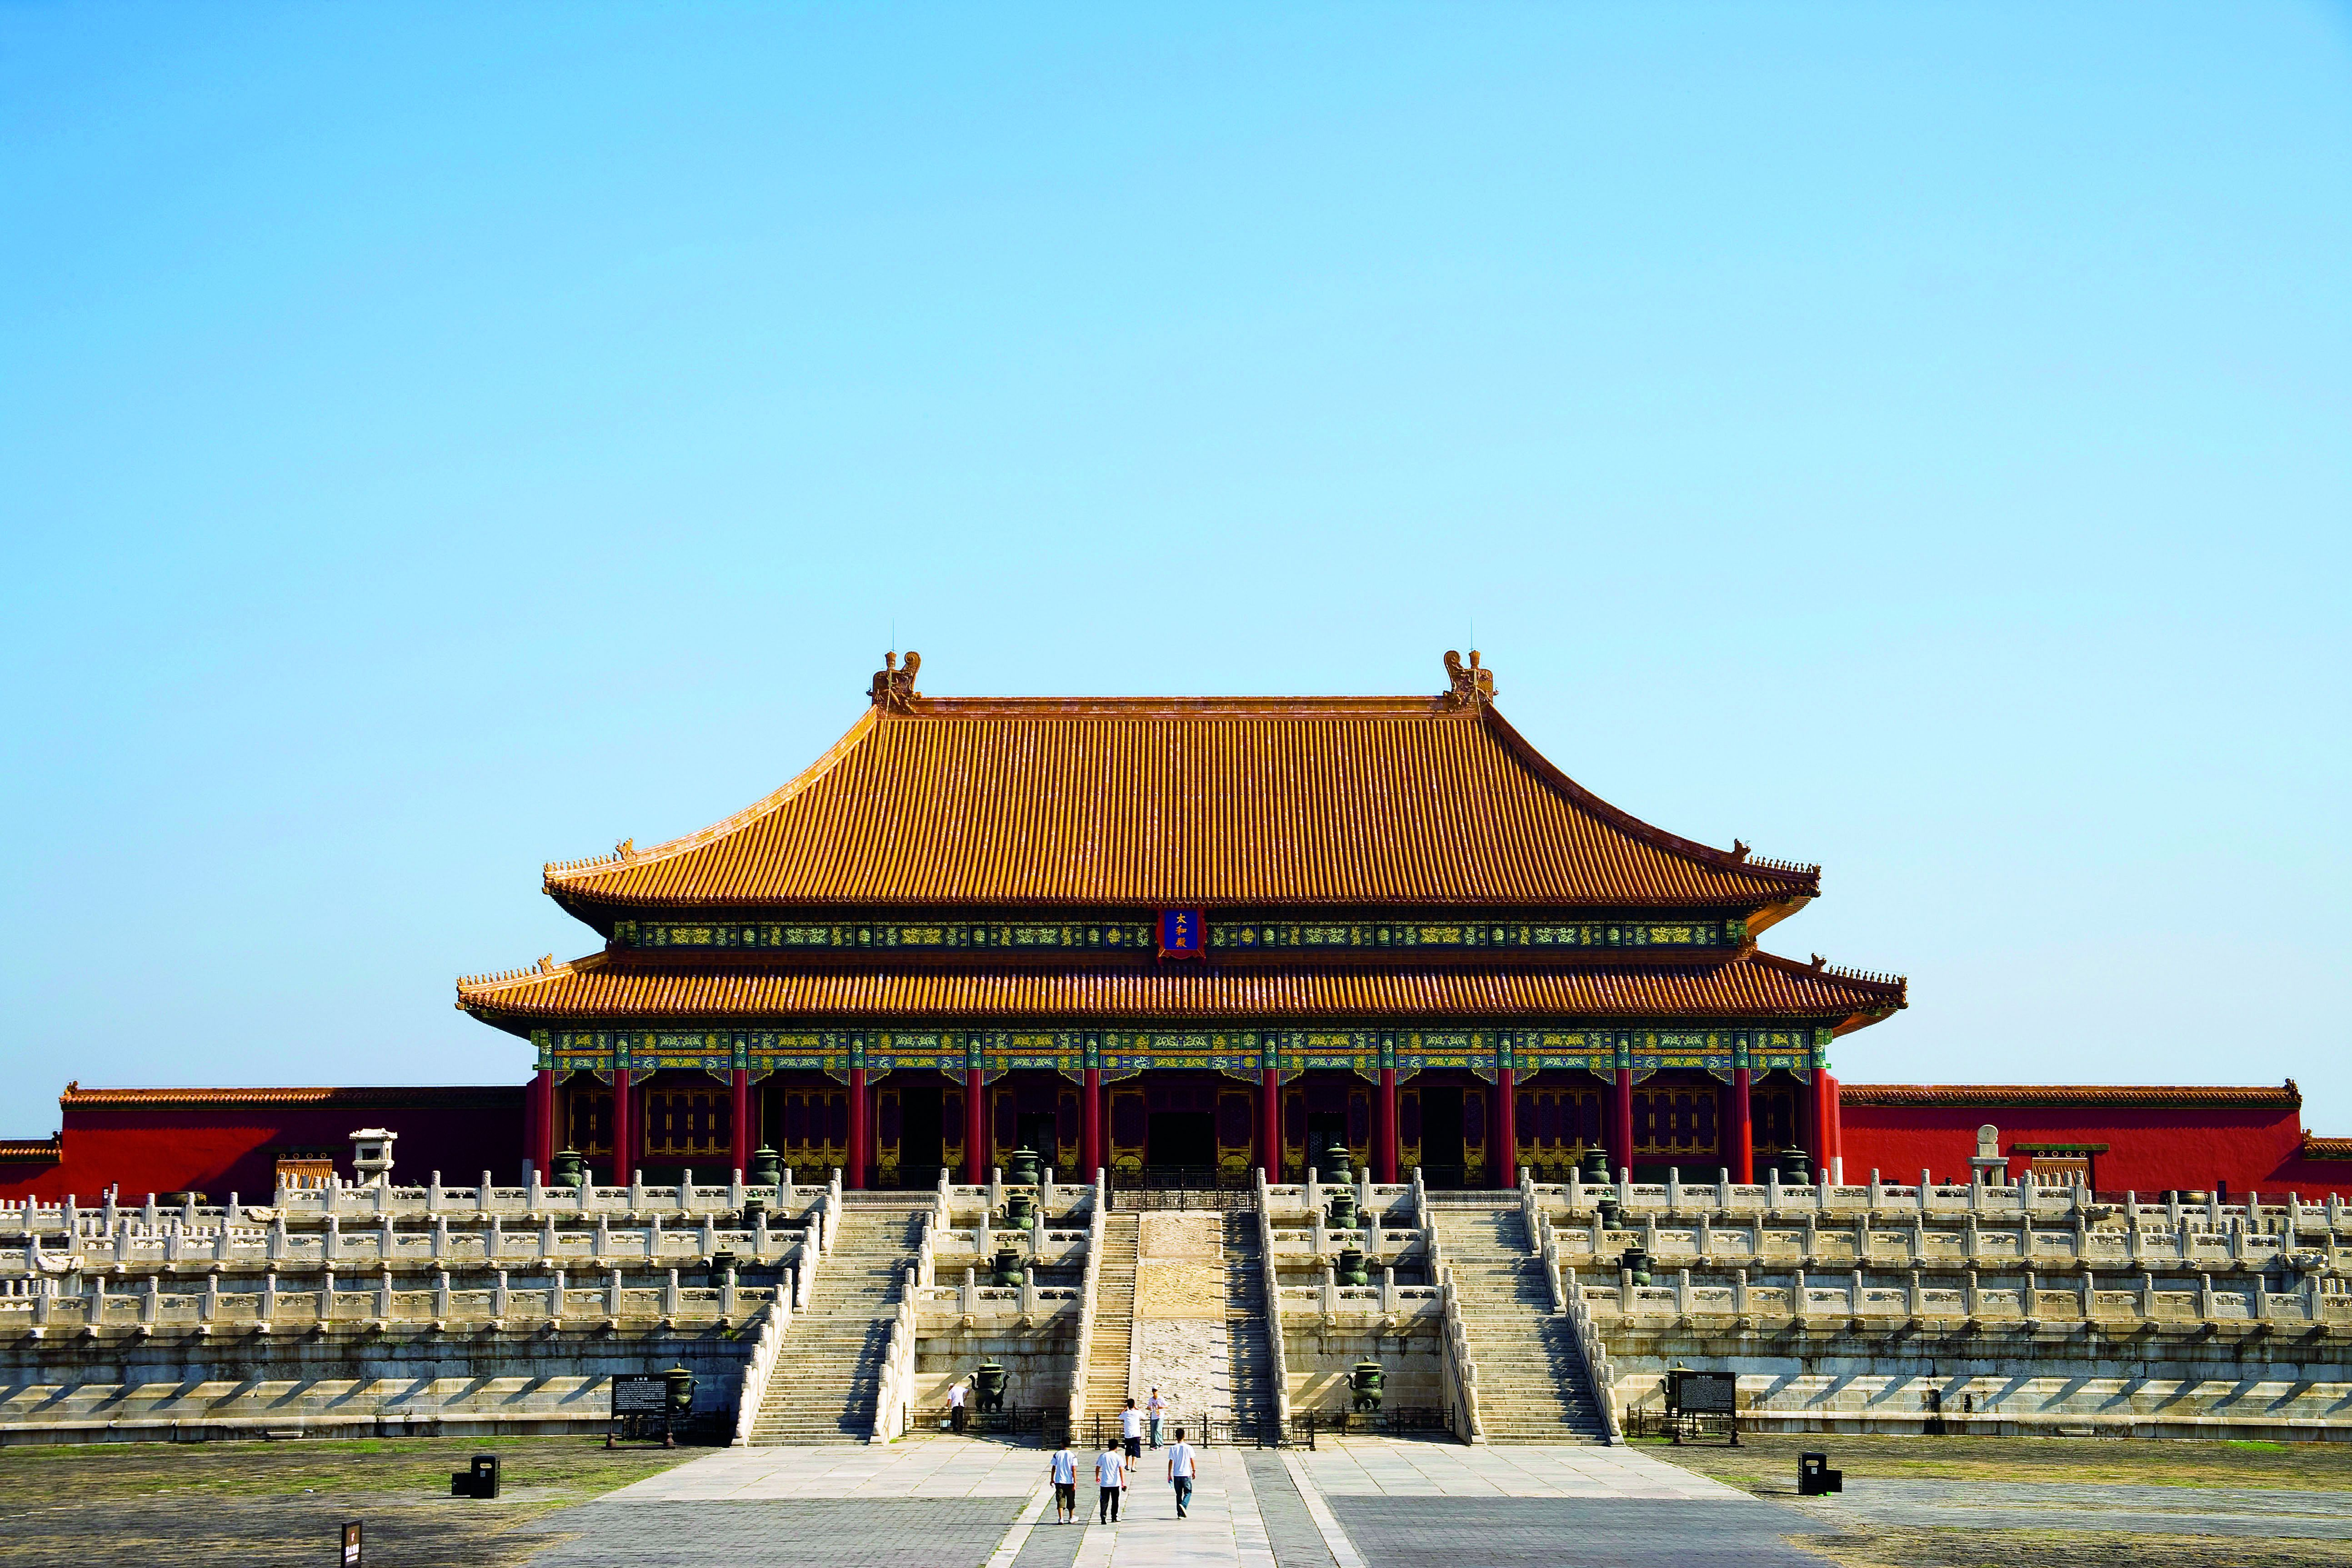 """The Facade of the Hall of Supreme Harmony, the most prestigious of the three great halls in the Forbidden City. Its grandeur symbolized the omnipotence of imperial authority and reinforced the power of the emperor. From """"Palace Architecture,"""" a volume of the Library of Ancient Chinese Architecture."""